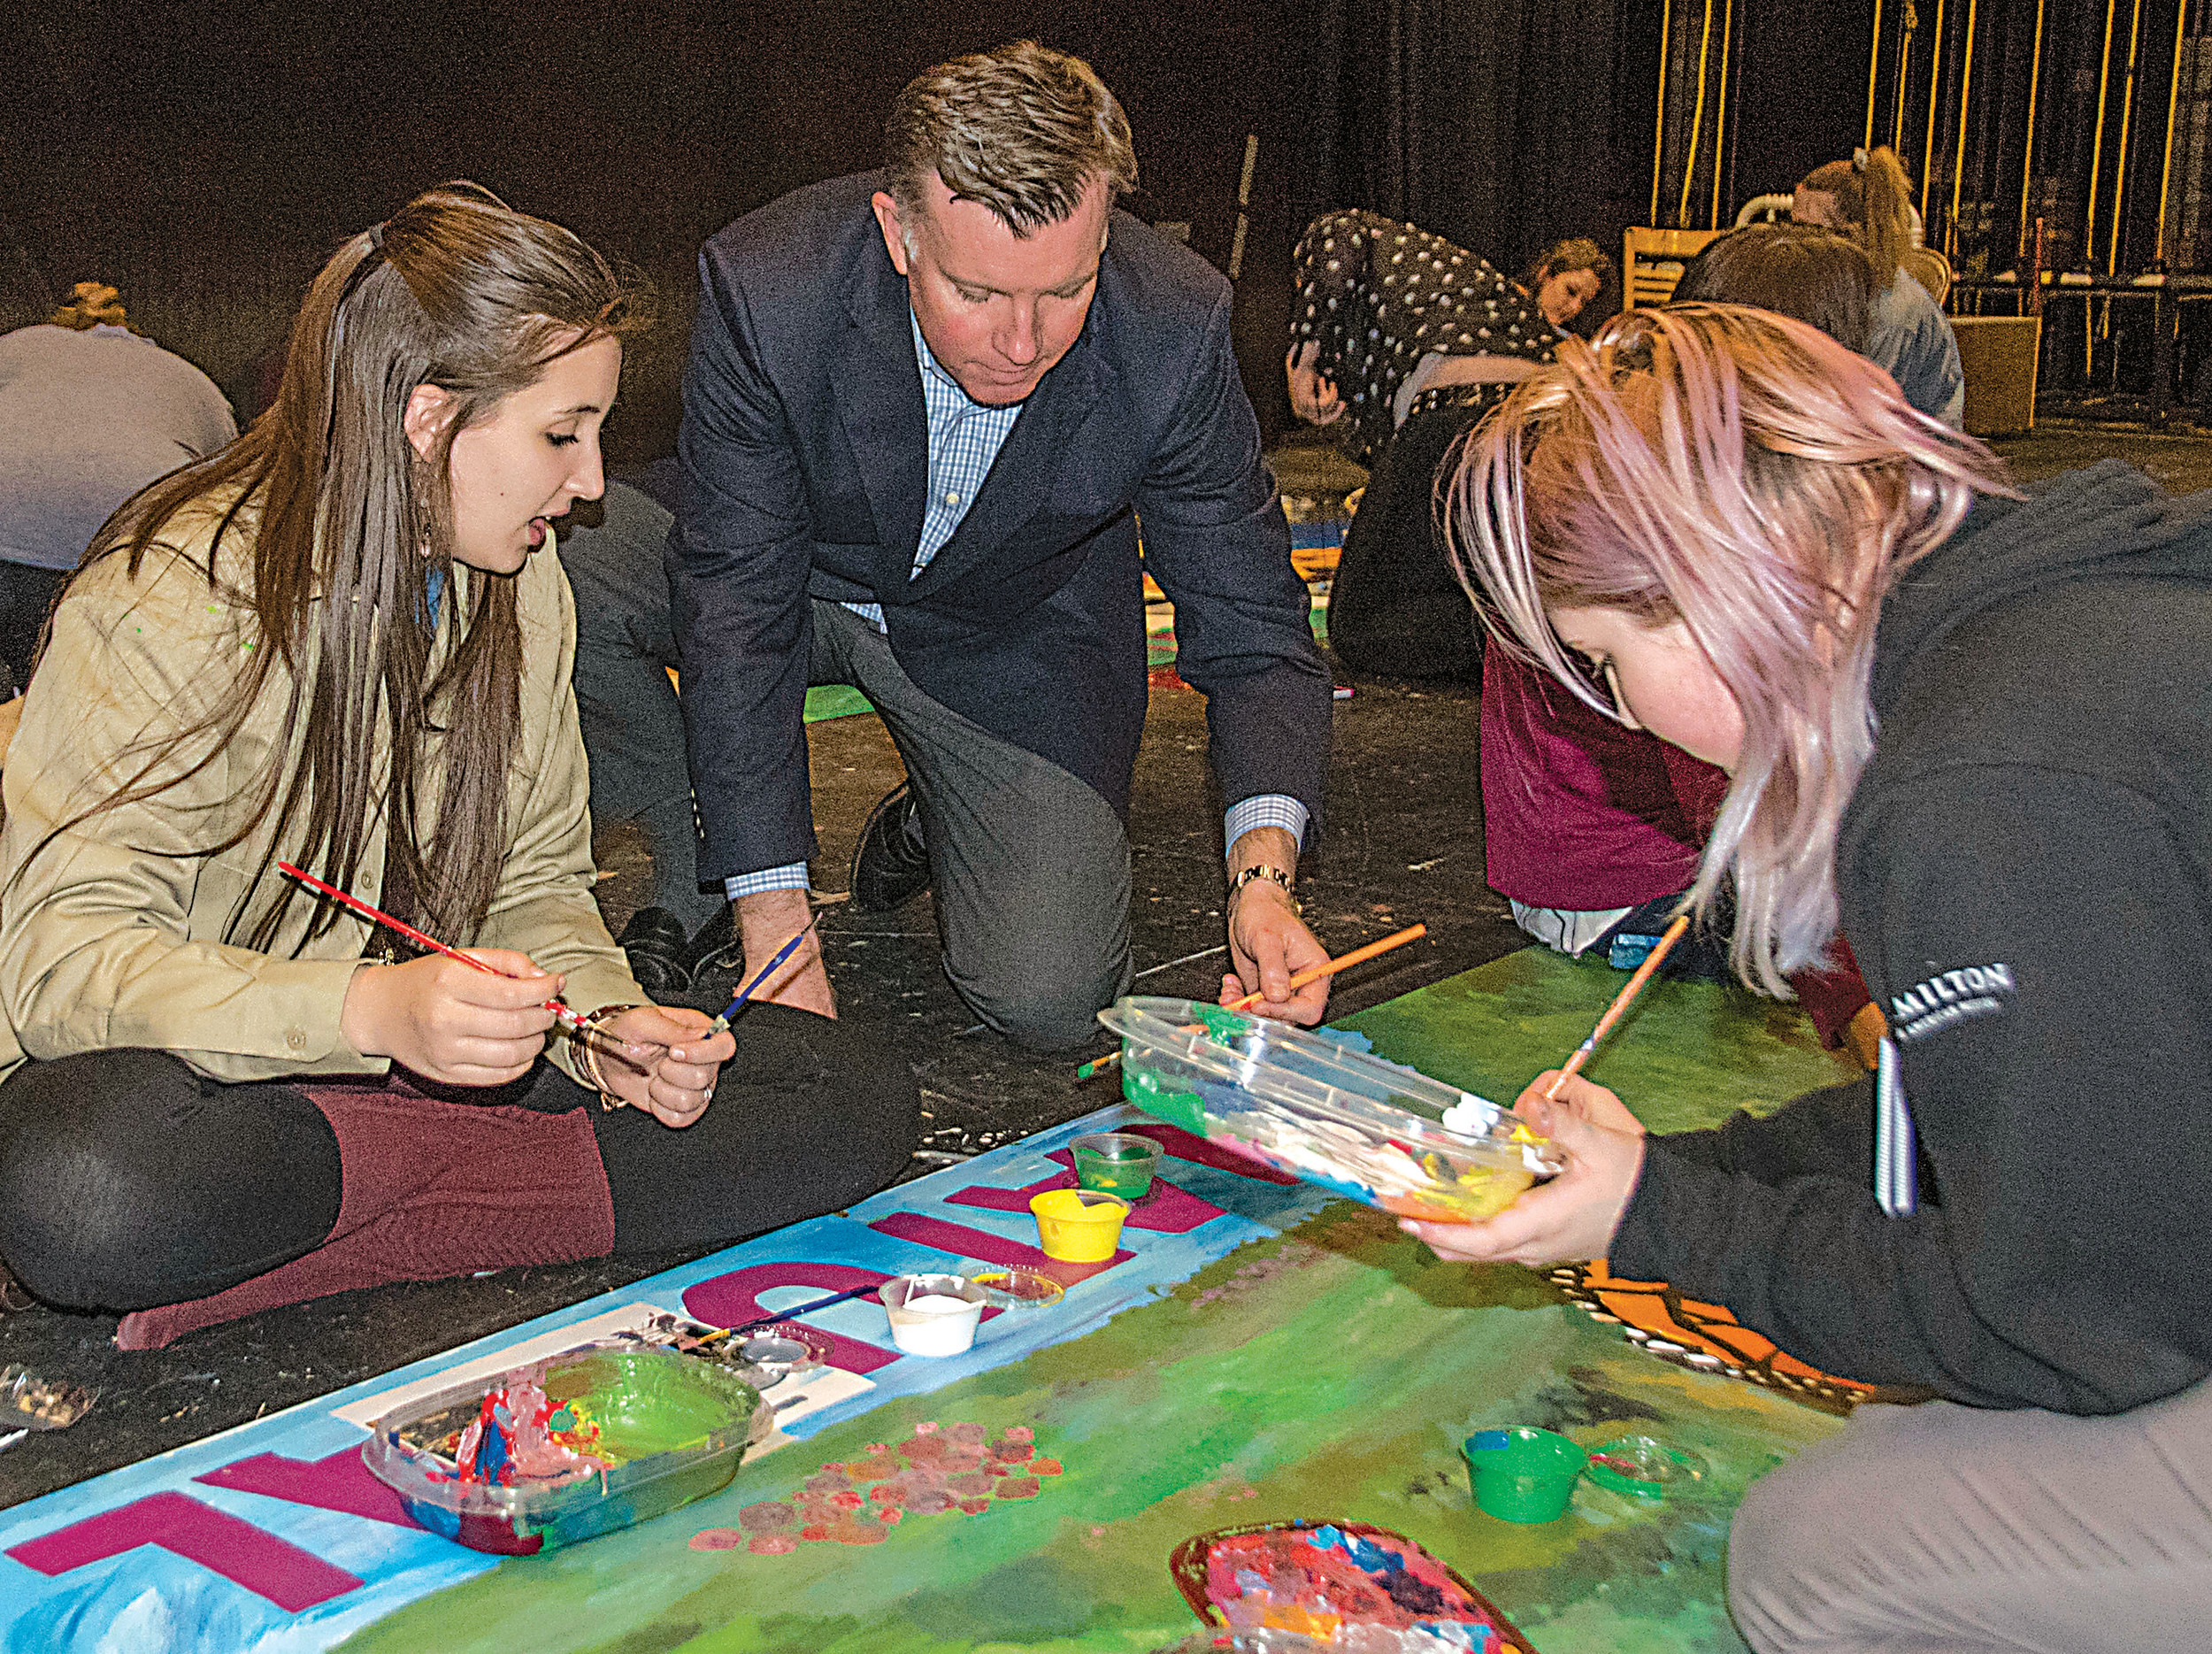 Lower Dauphin High School art students instruct Mark Compton, Pennsylvania Turnpike CEO, in painting techniques on March 30.